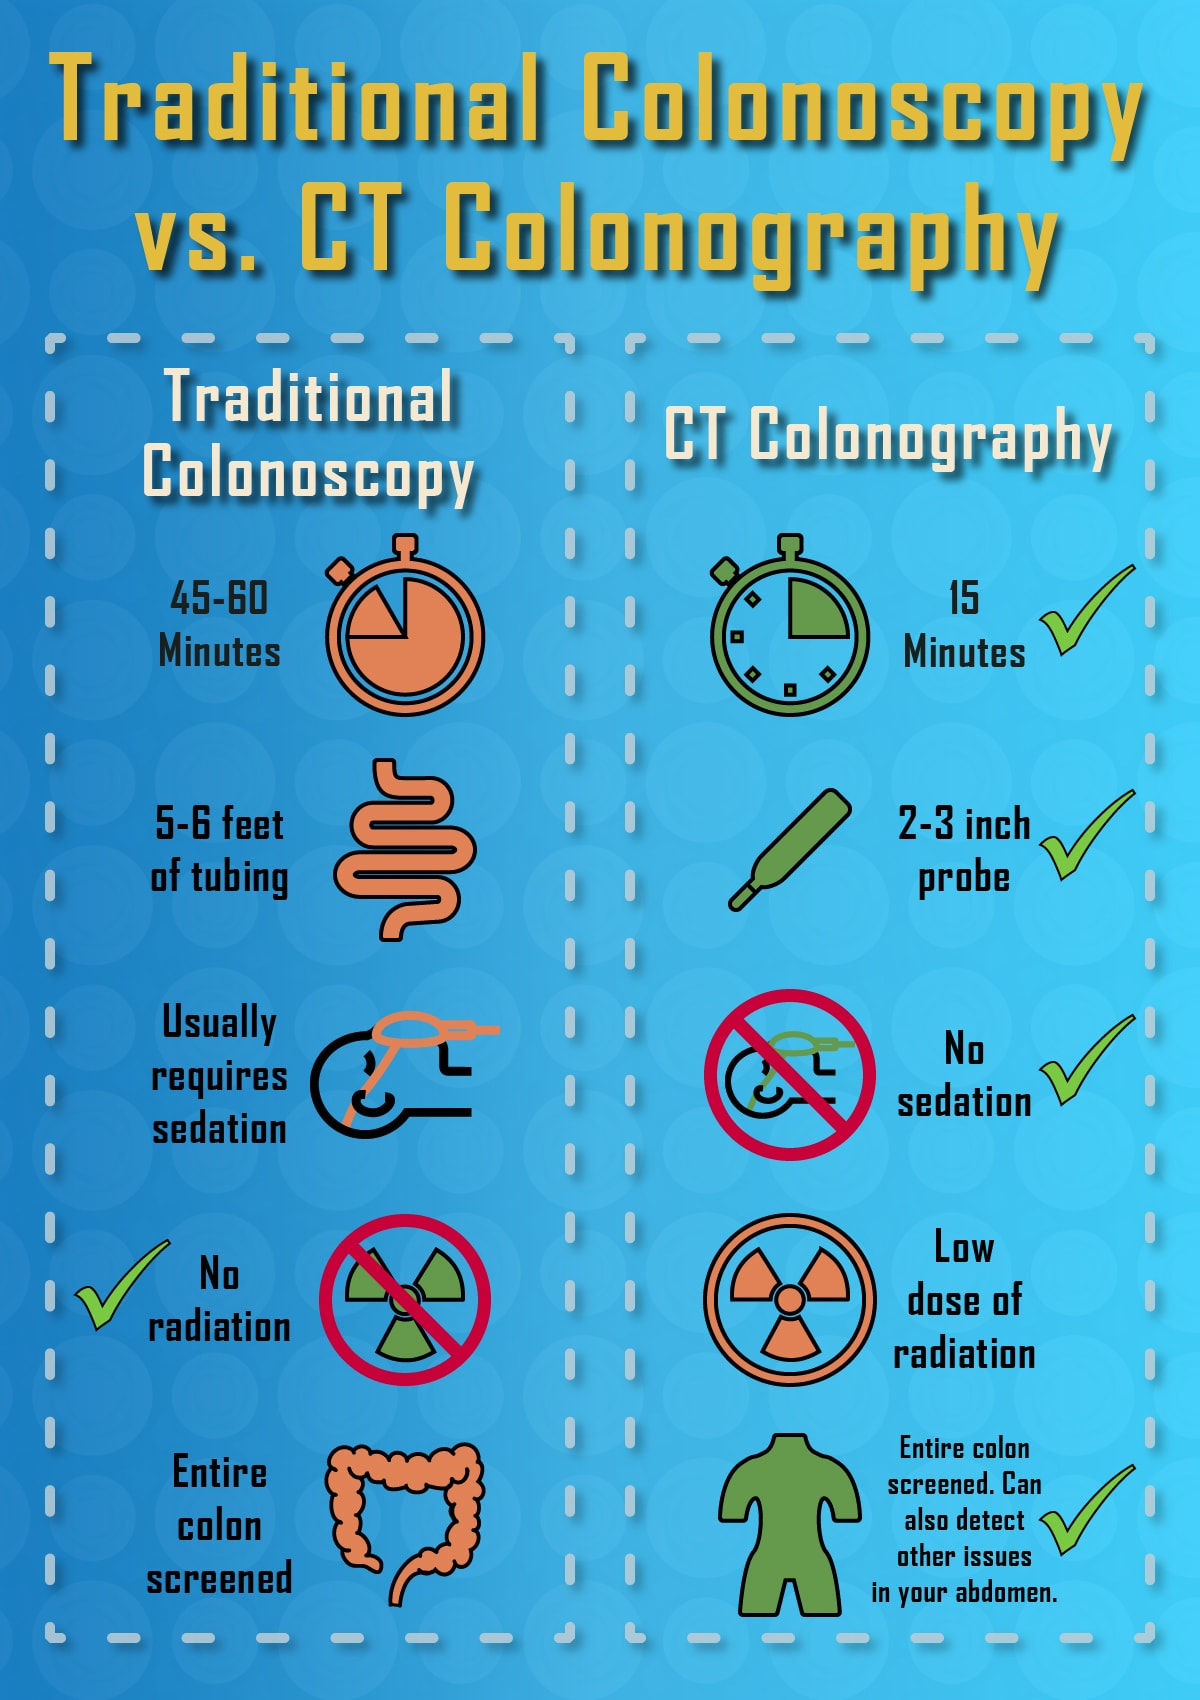 An infographic comparing traditional colonoscopy with CT Colonography. Traditional Colonoscopy: 45-60 minutes; 5-6 feet of tubing; Usually requires sedation; No radiation; Entire colon screened. CT Colonography: 15 minutes; 2-3 inch probe; No sedation; Low dose of radiation; Entire colon screened. Can also detect other issues in your abdomen.